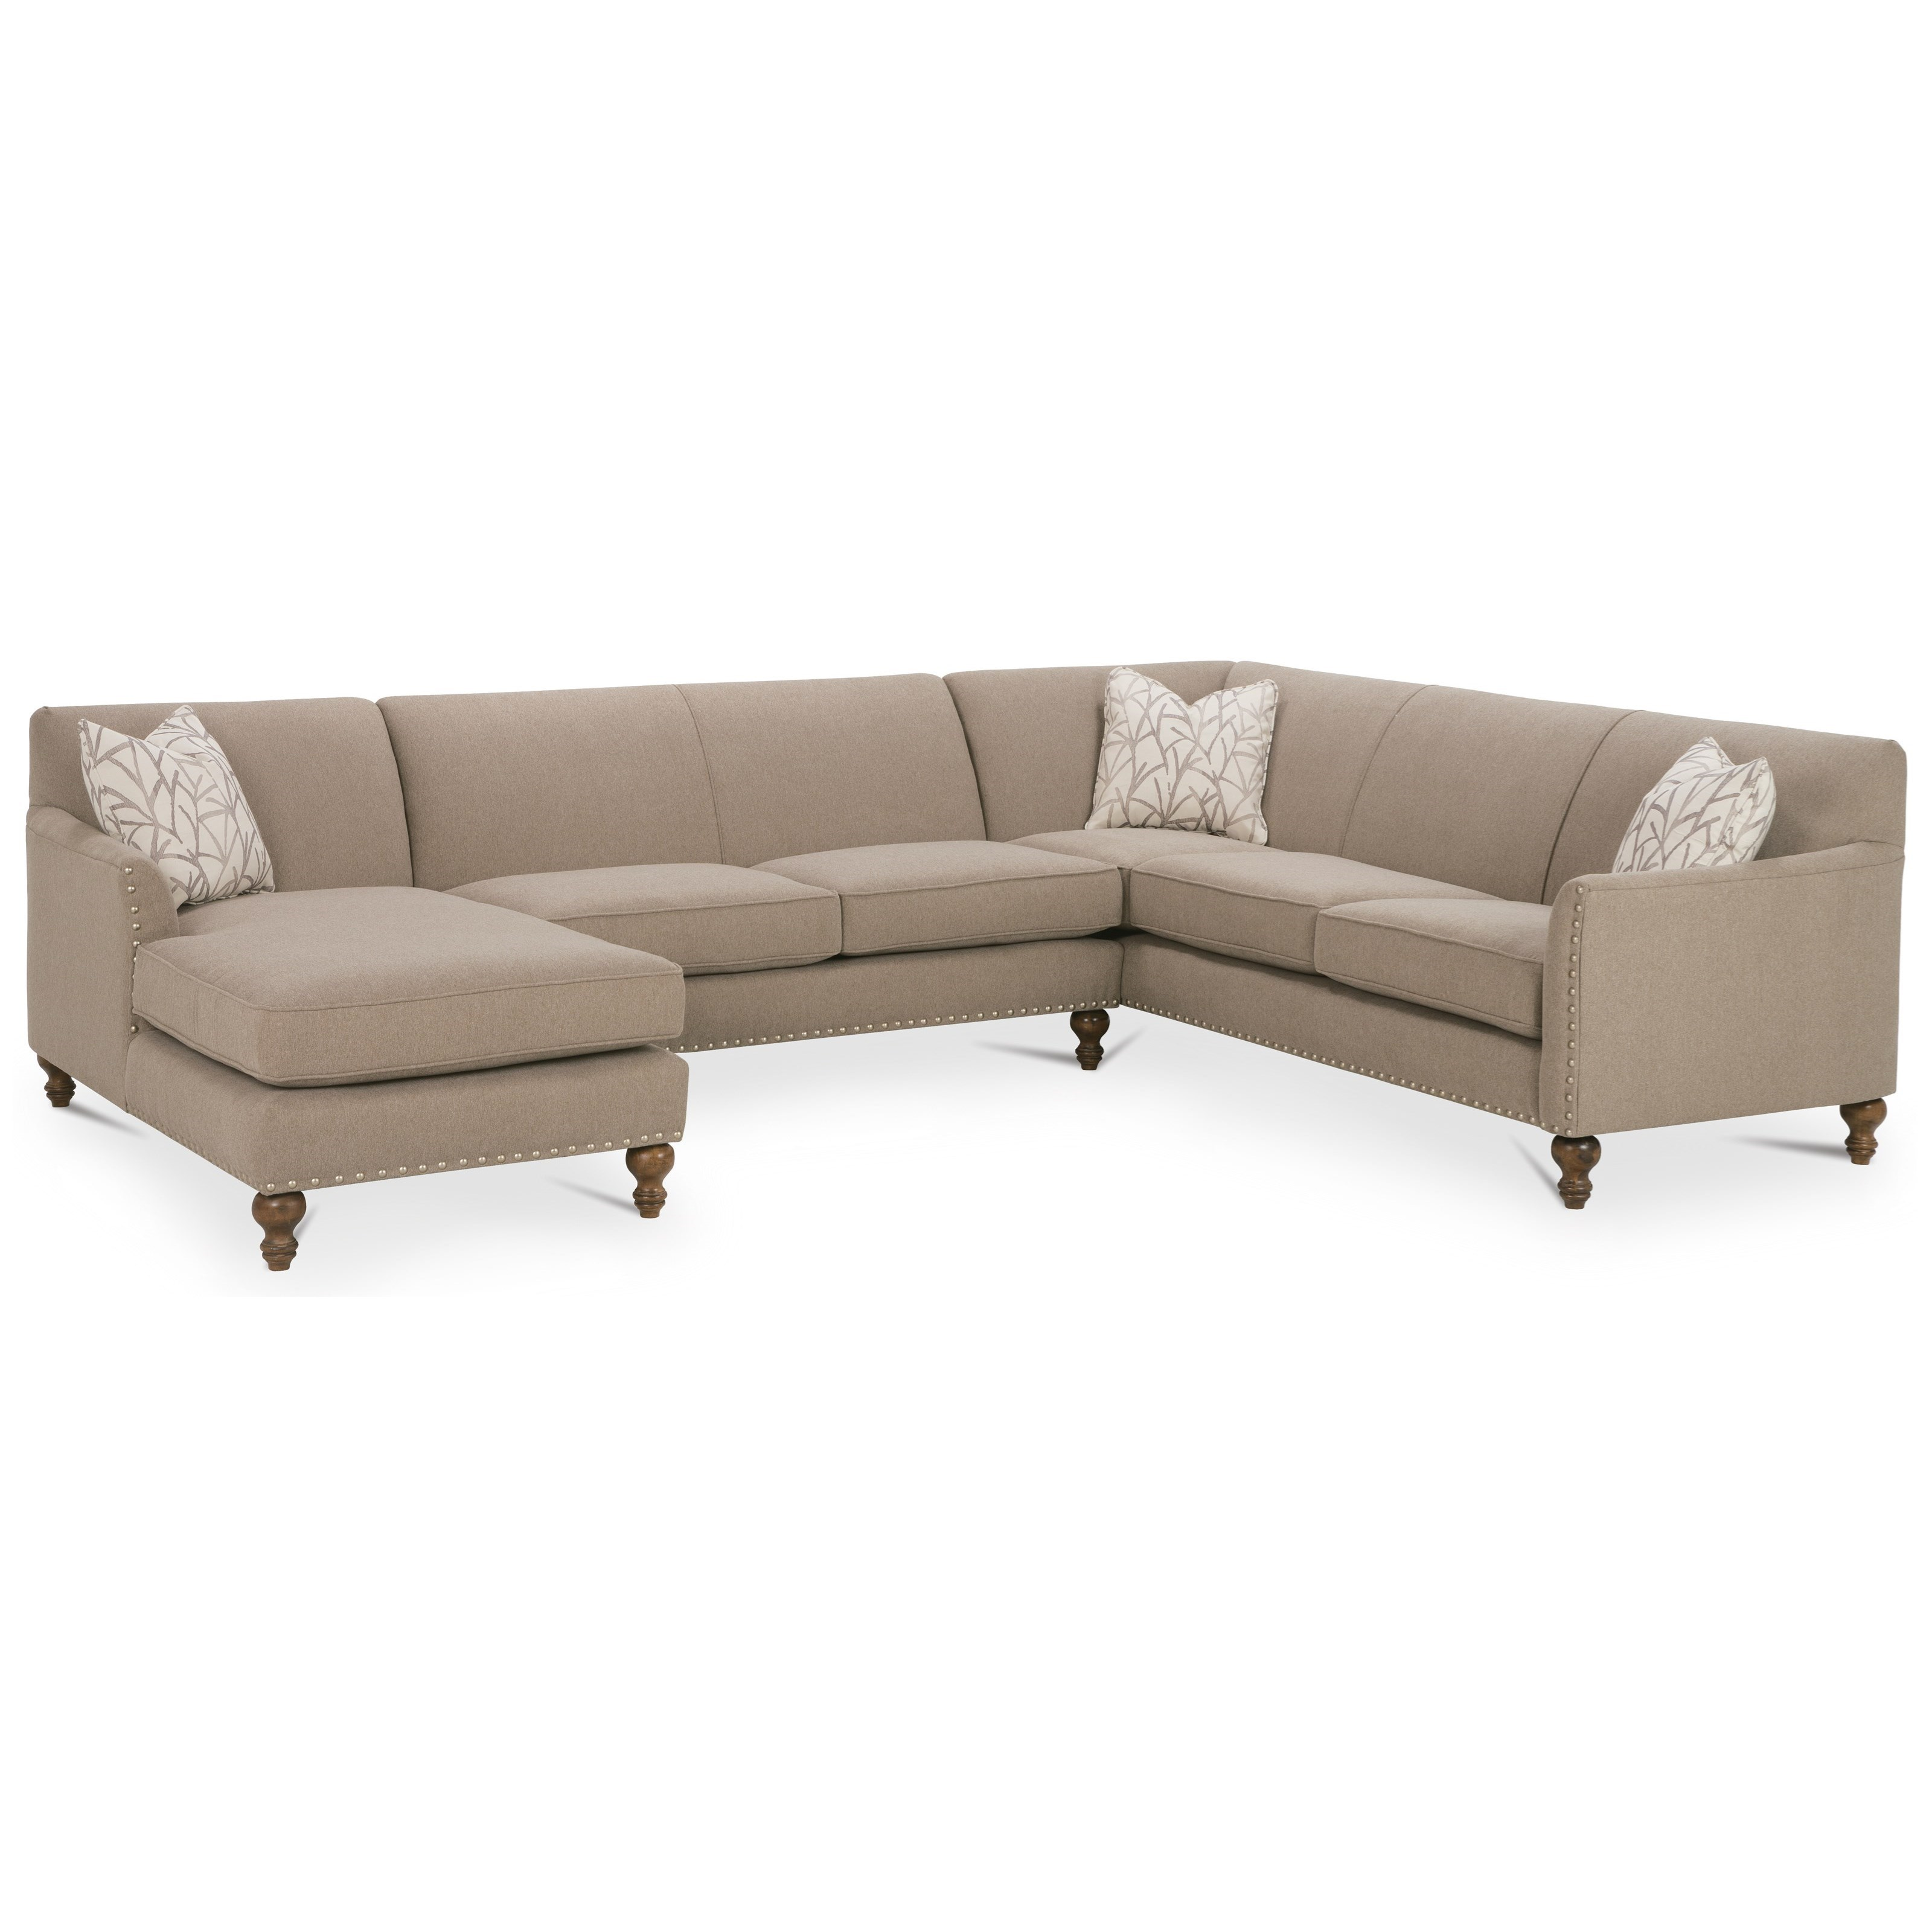 Rowe varick rxo customizable 3 piece sectional sofa w raf for 3pc sectional with chaise